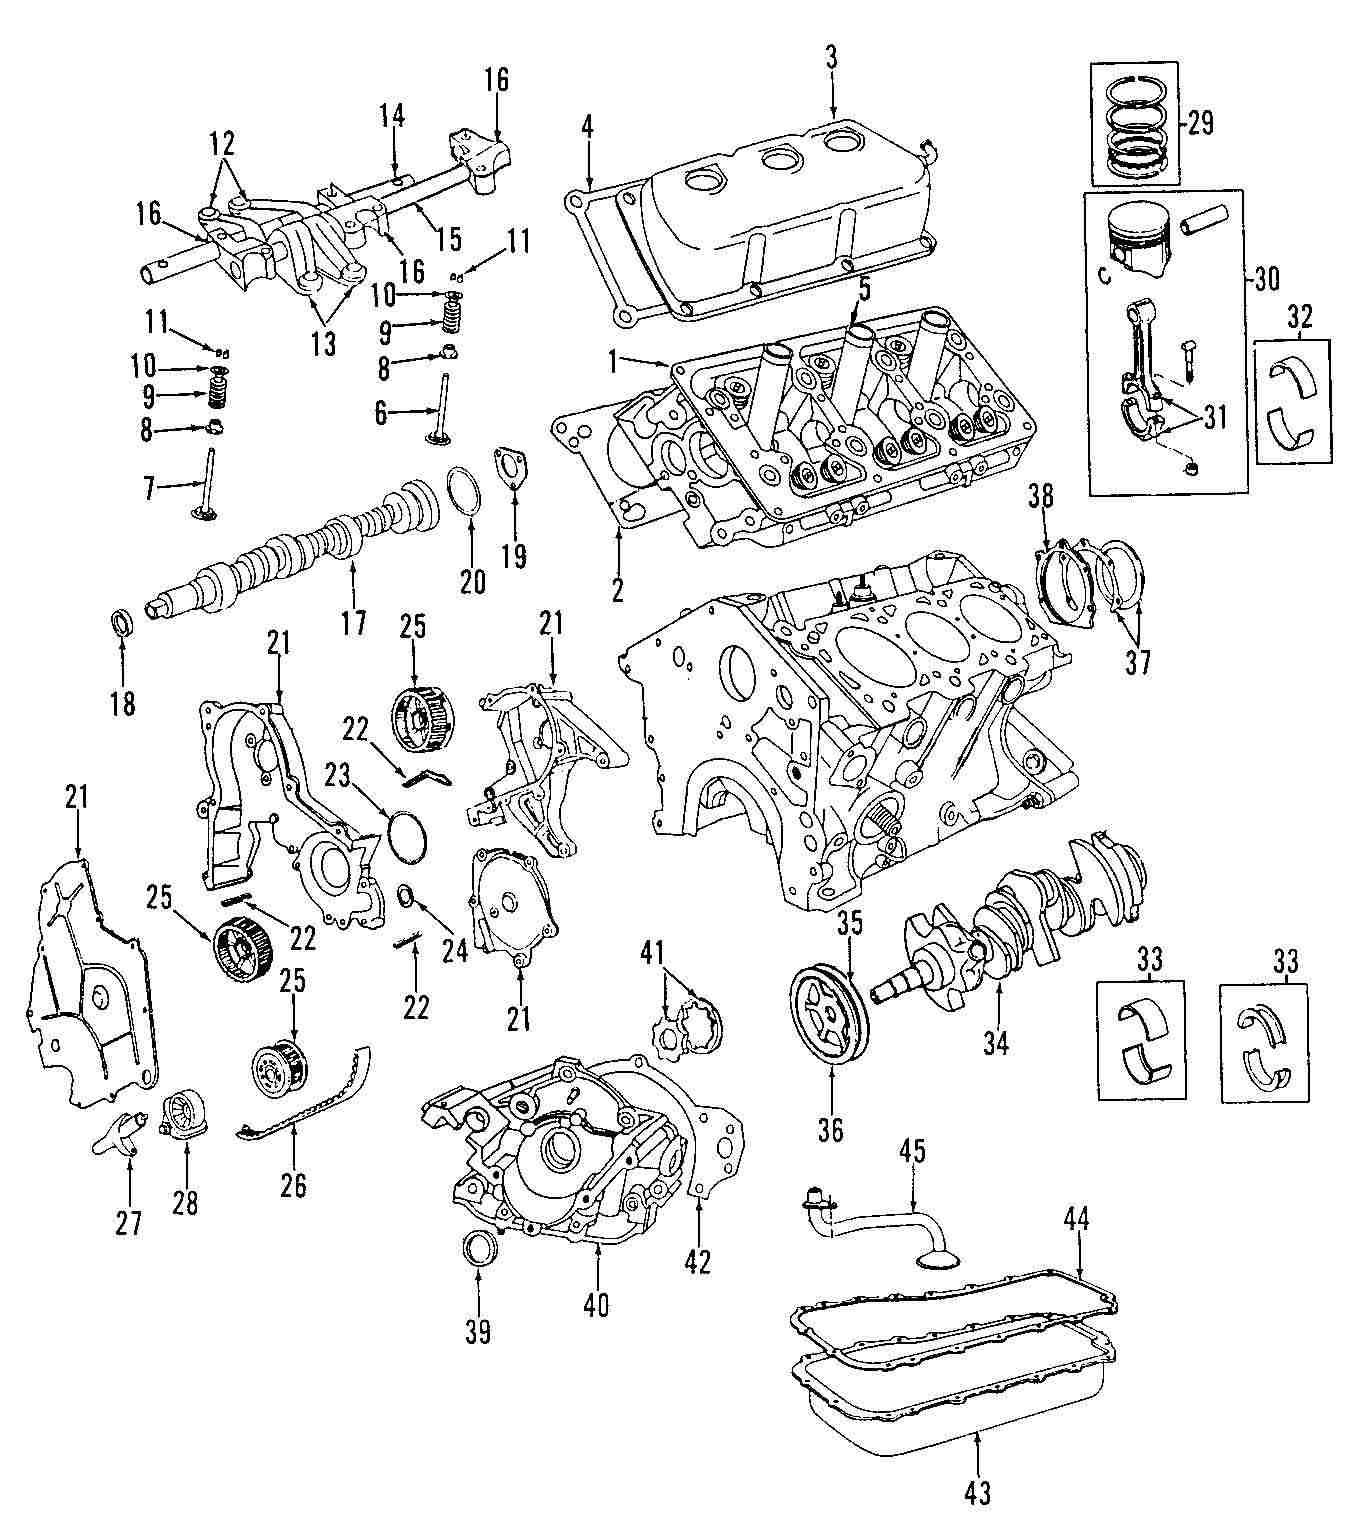 Chrysler Lhs Parts